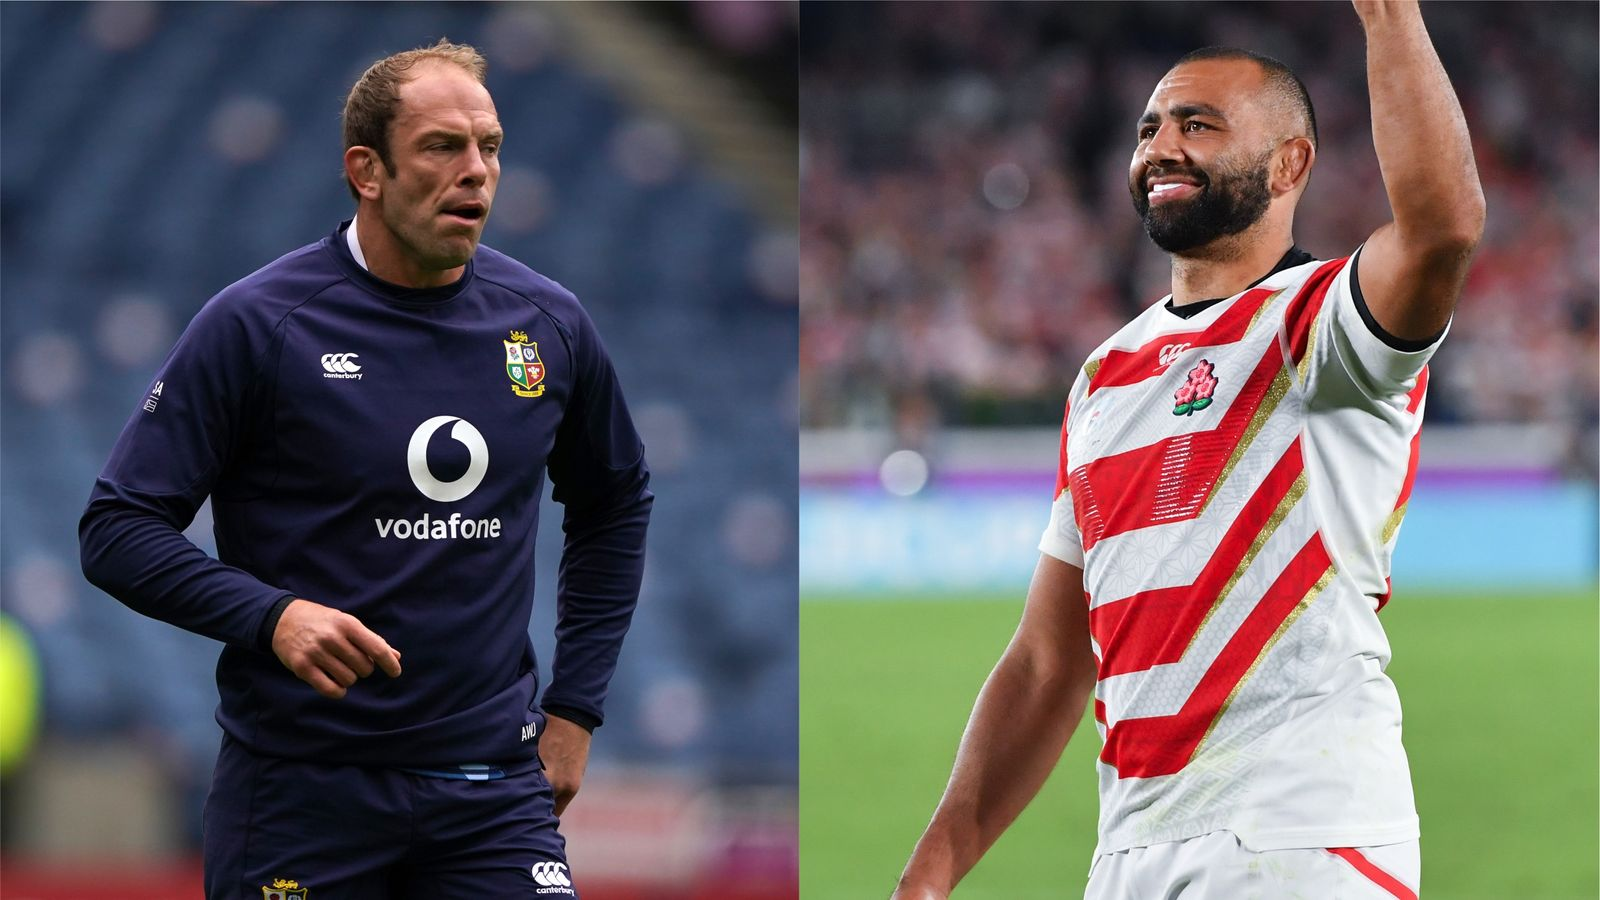 British and Irish Lions vs Japan: A game of uncertainties, absentees and injuries at Murrayfield